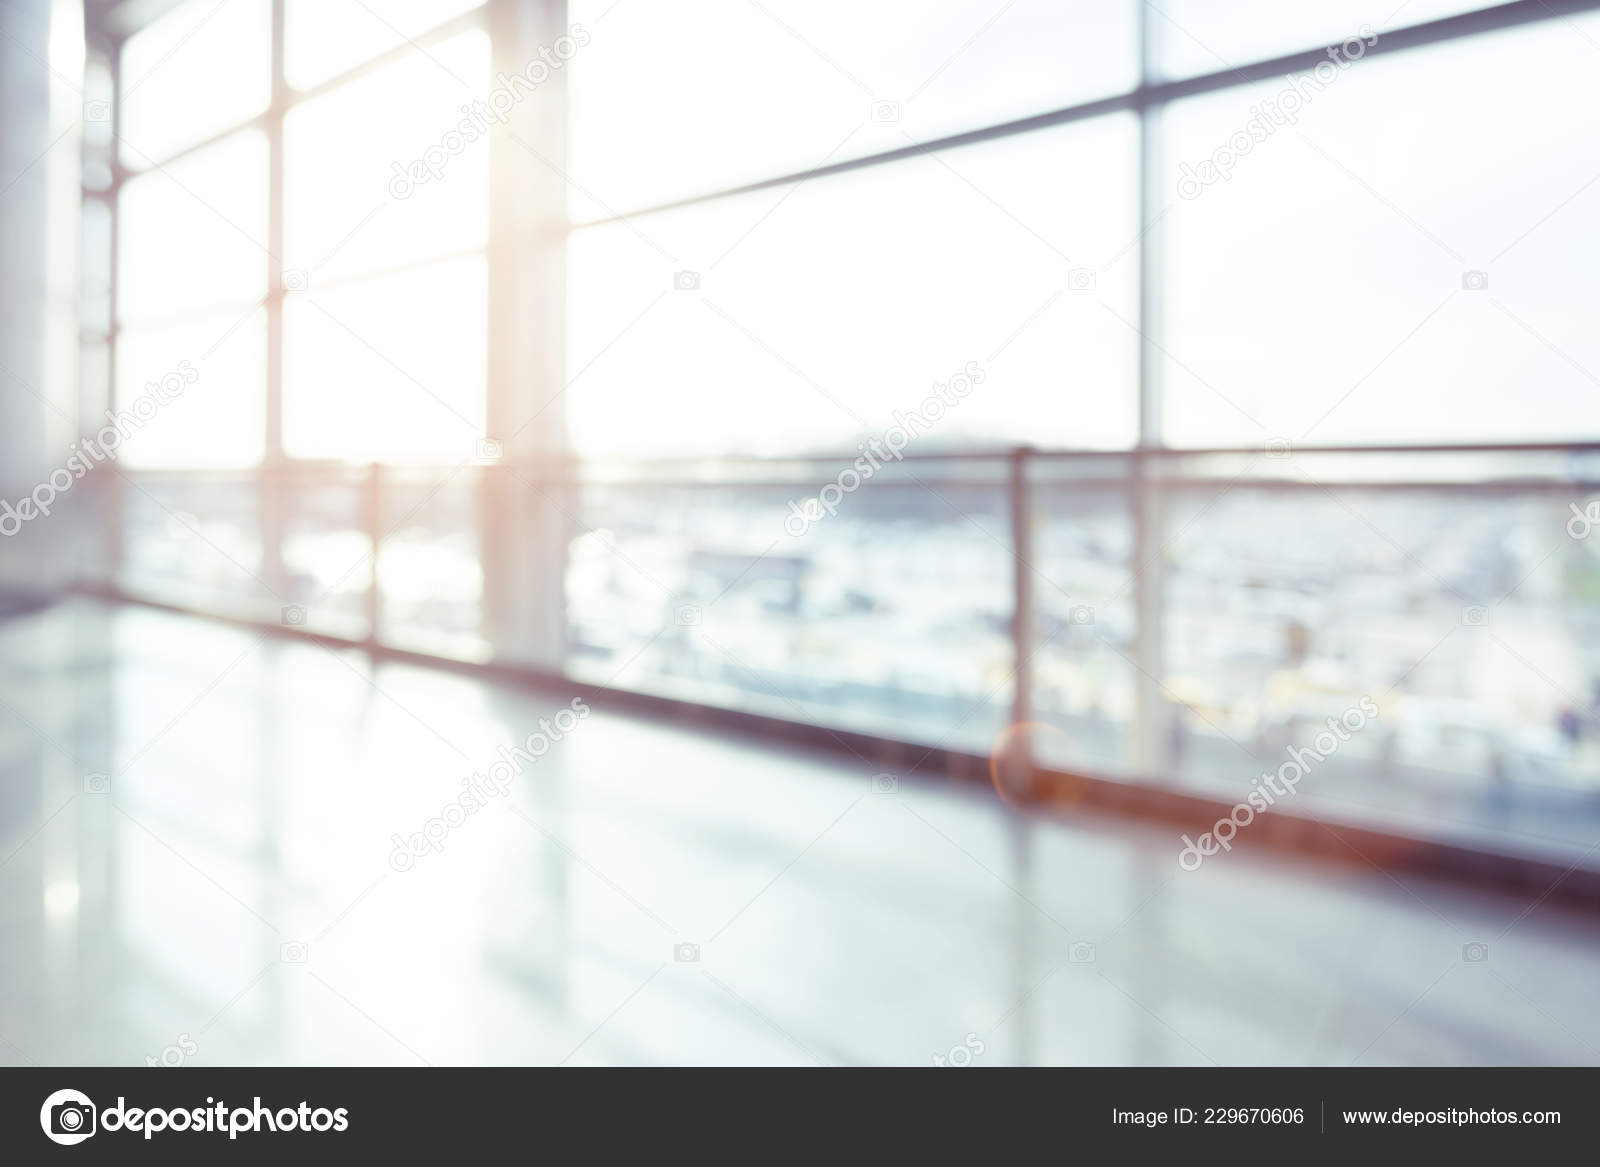 Abstract Blur Shot Airport Background — Stock Photo